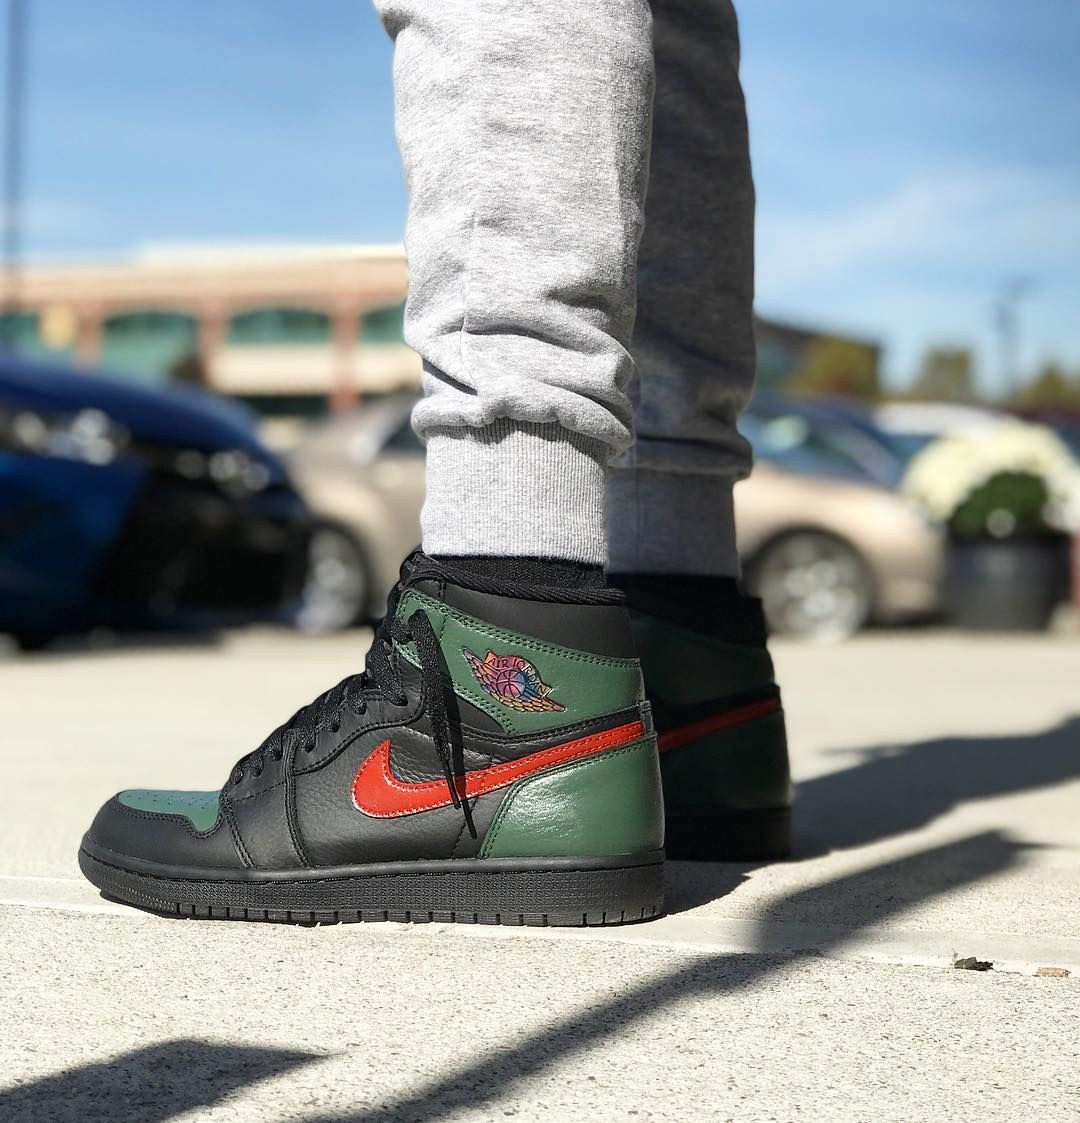 b432af486bb84 GUCCI Custom Air Jordan 1 High